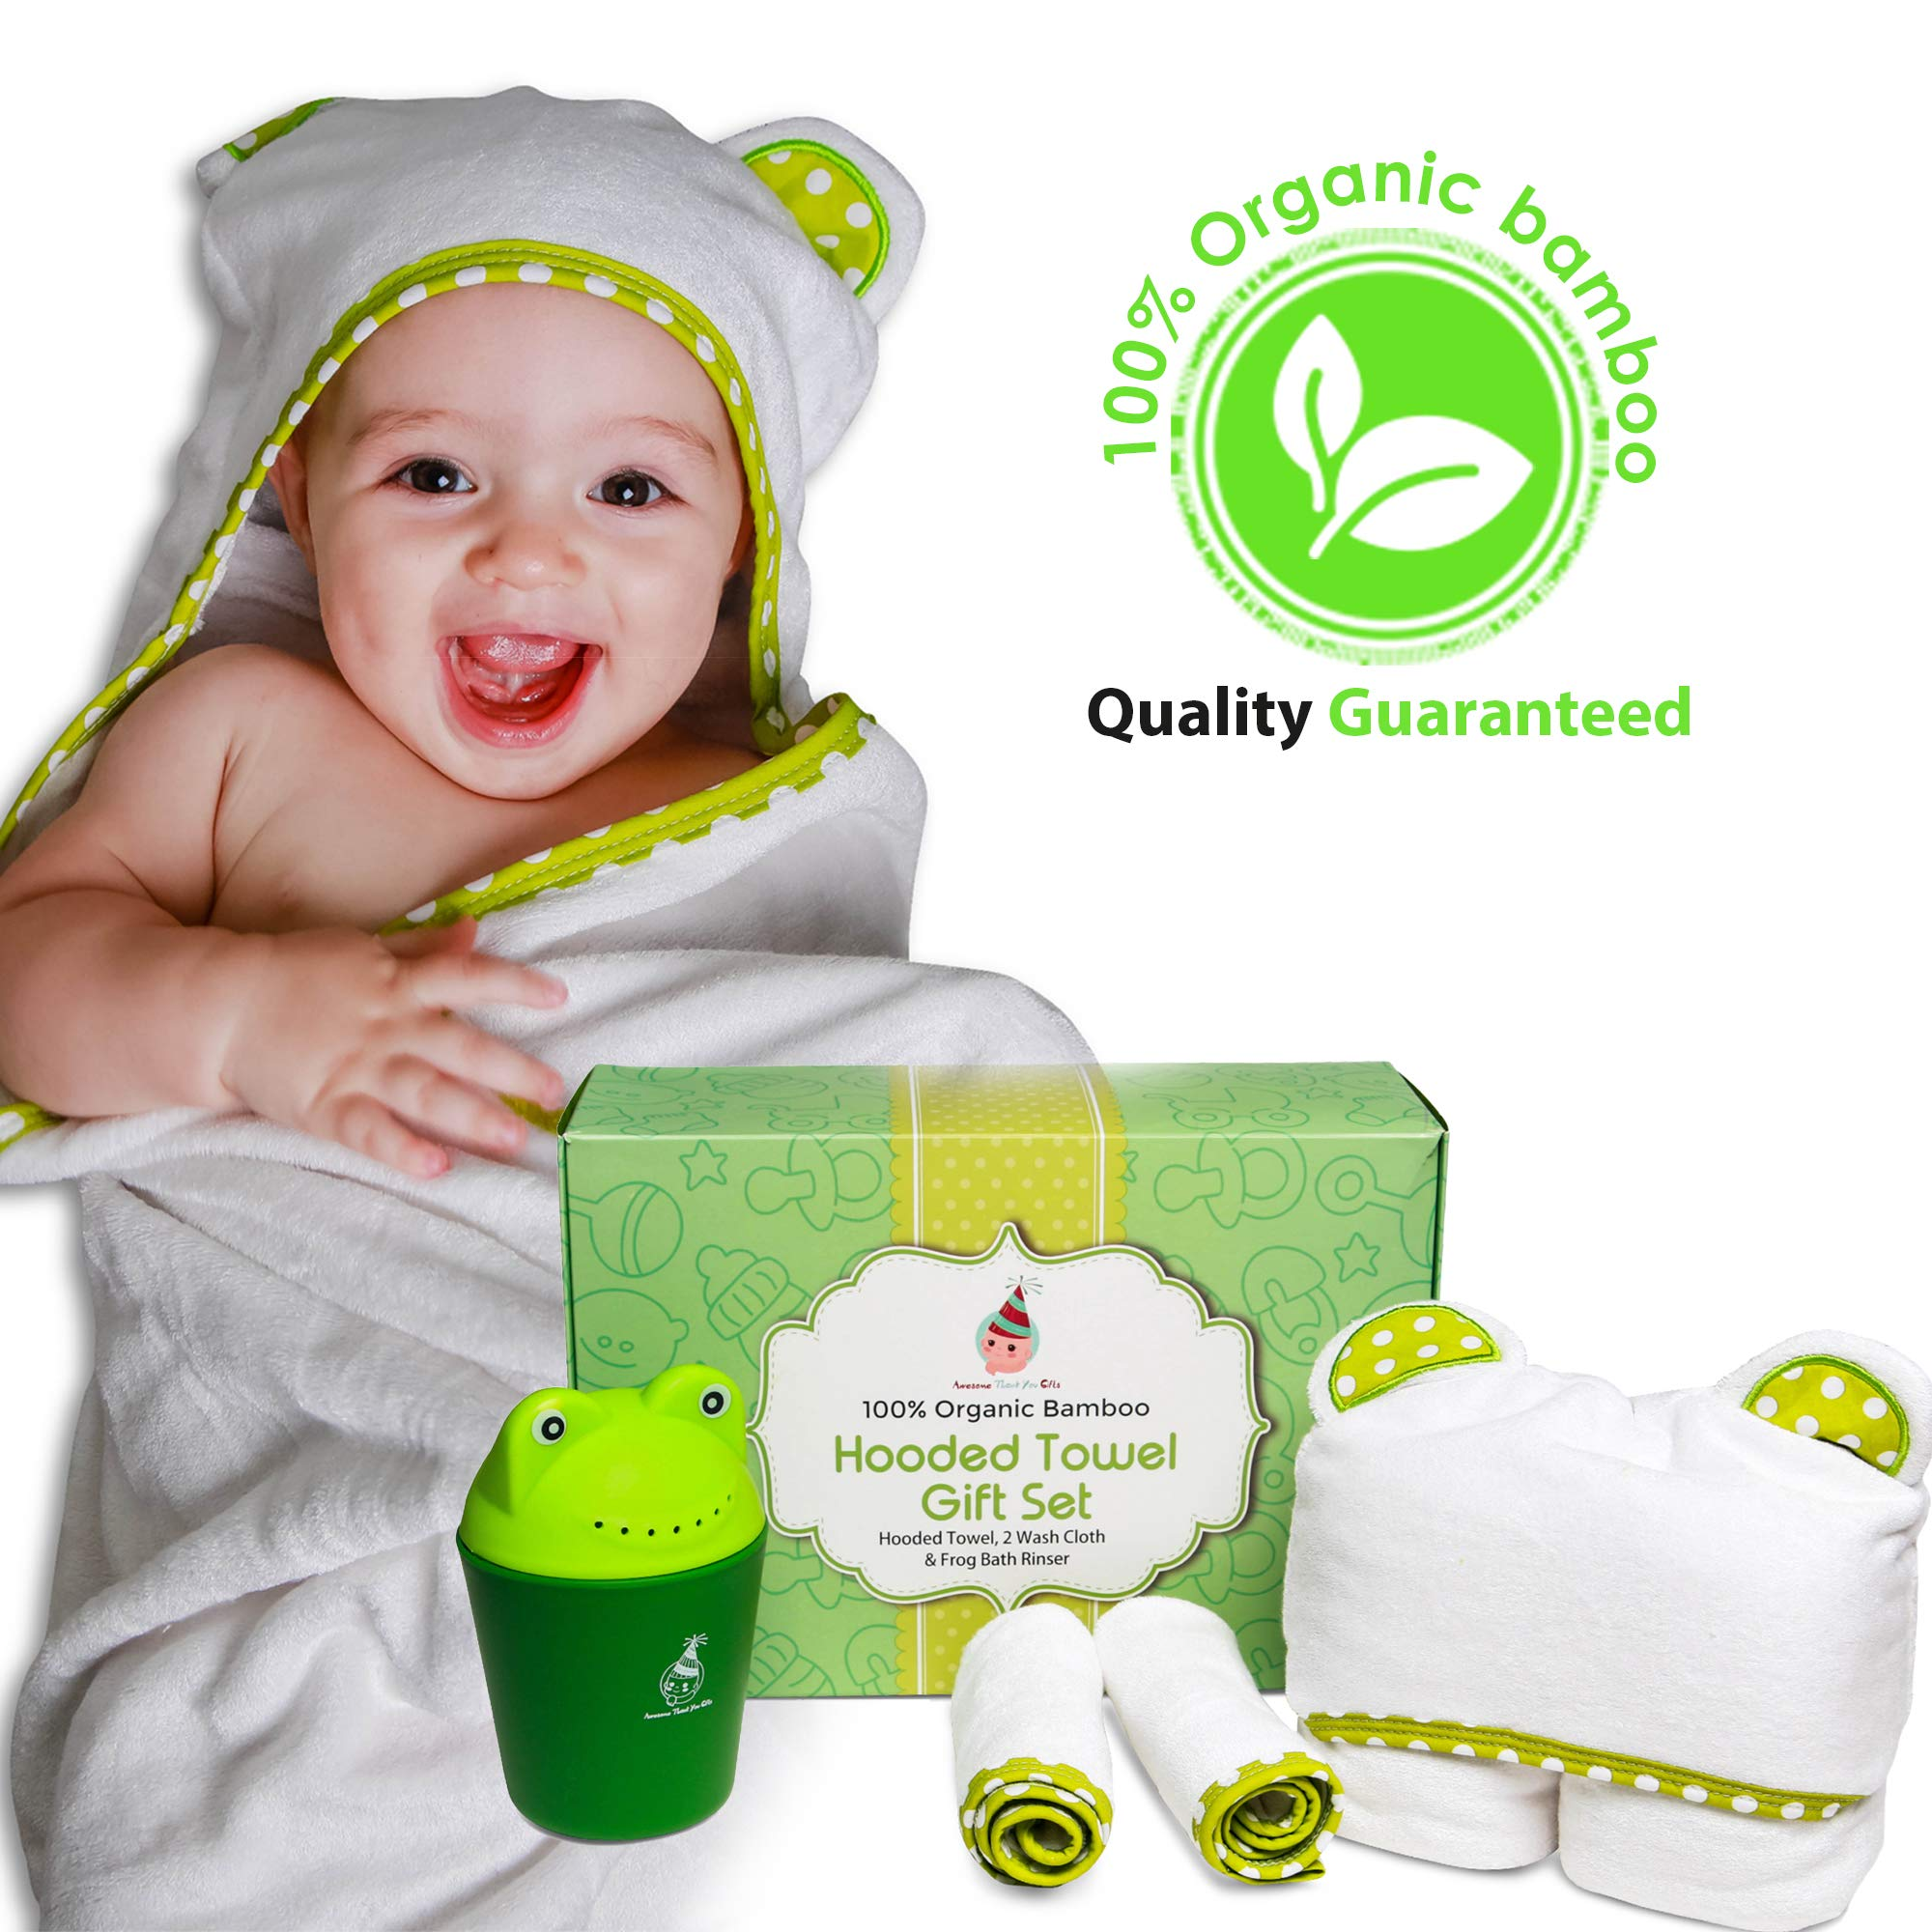 100% Organic Bamboo Hooded Baby Towel Gift Set with 2 wash Cloth and Frog Shampoo Rinser Cup | 0-5 Years Old | Perfect as a Gift | Beach Towel |Unique,Unisex, Perfect for Newborn, Infant and Toddlers by Awesome Thank You Gifts